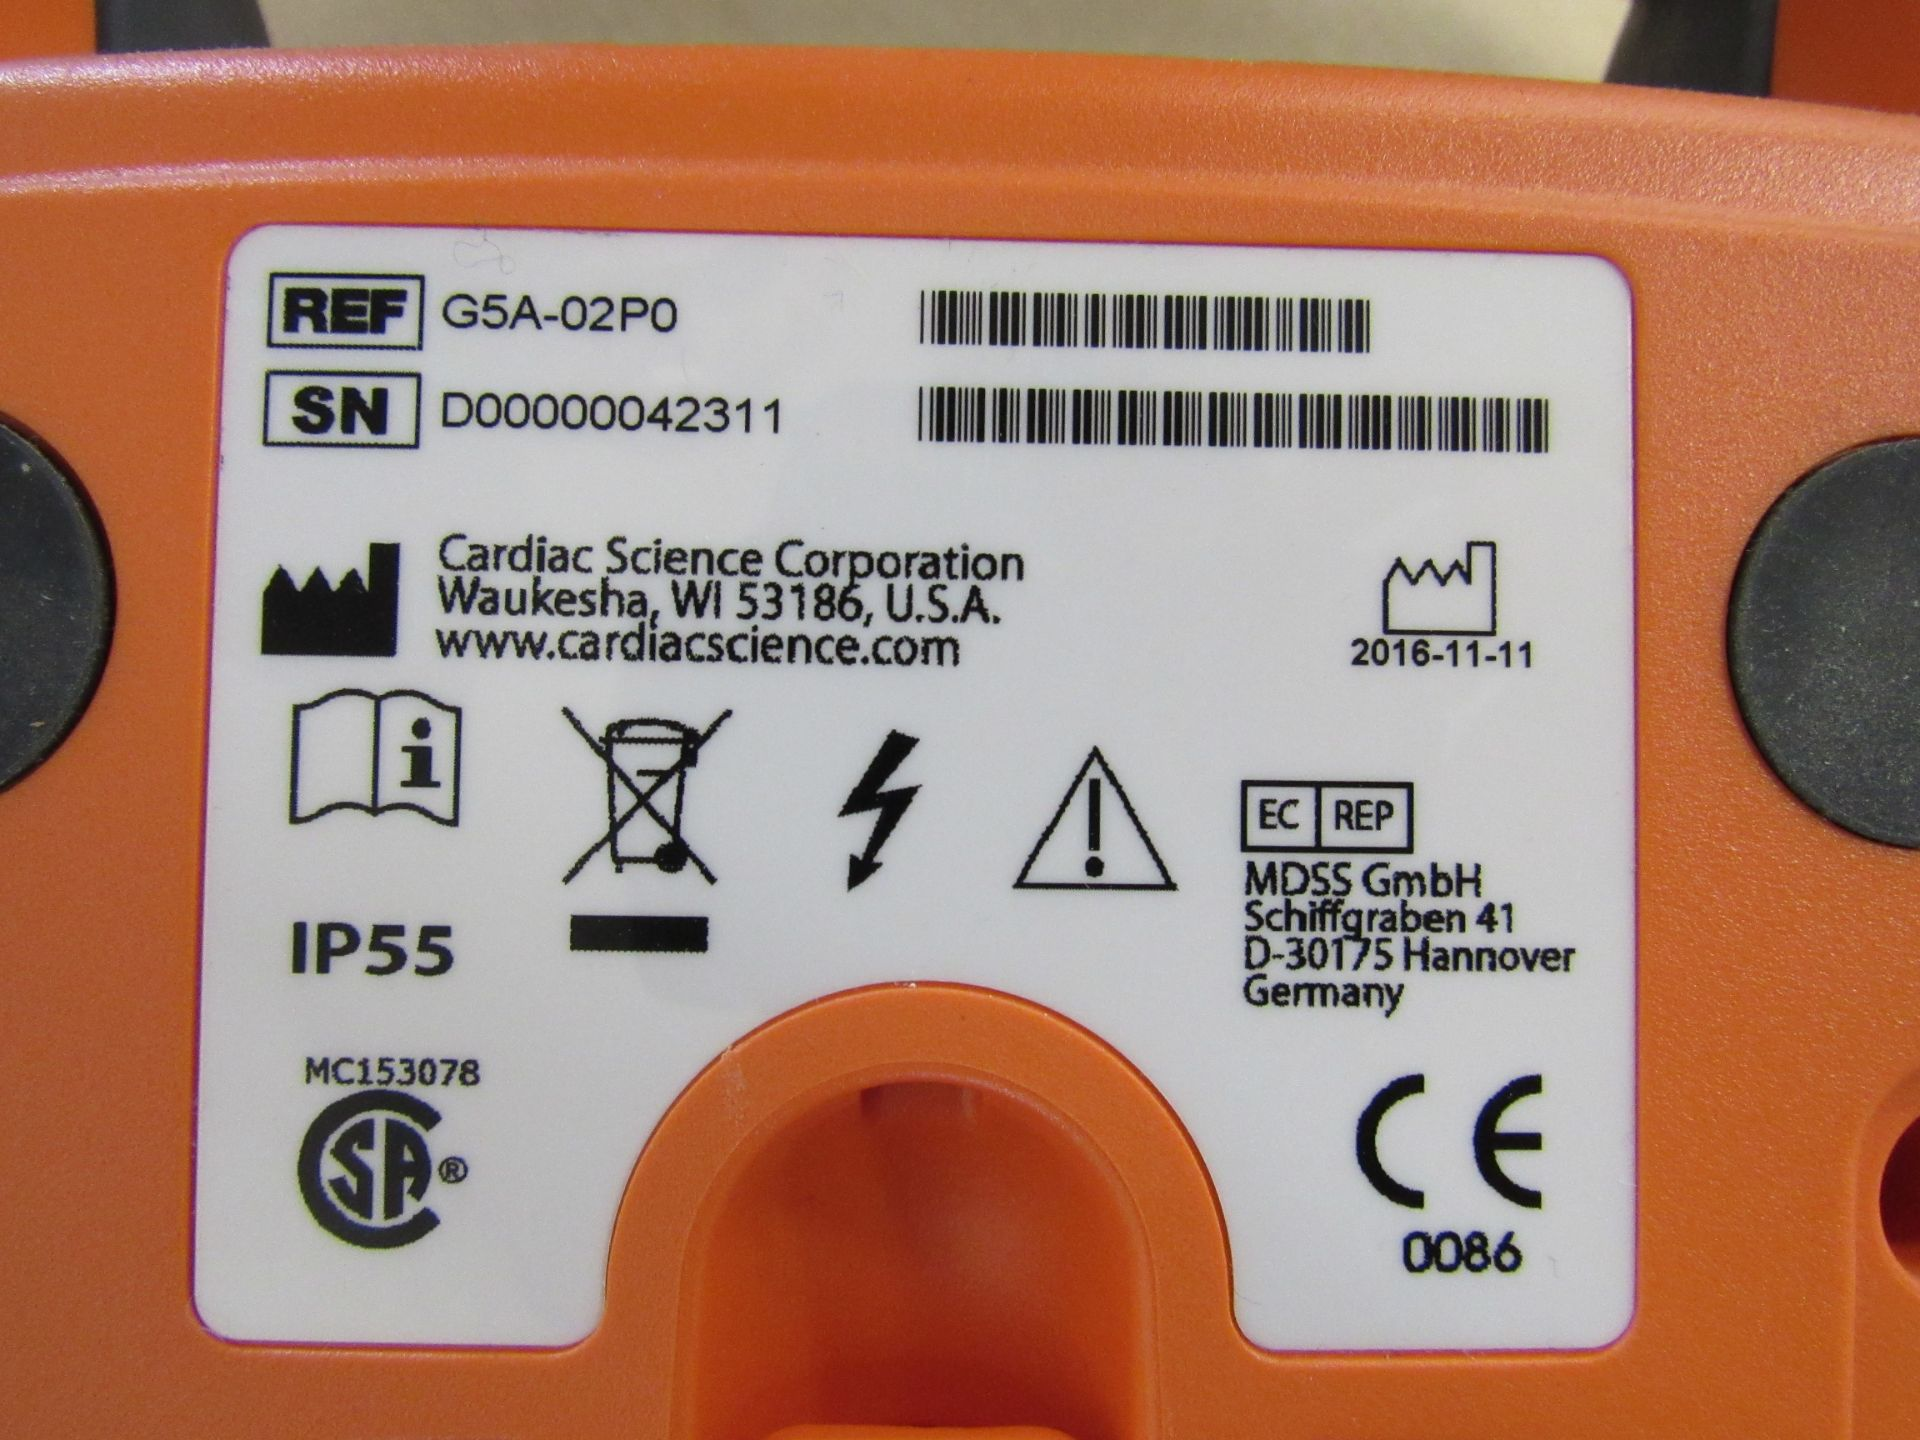 PowerHeart G5 automatic external defibrillator, Serial Number D00000042311 - Image 3 of 3